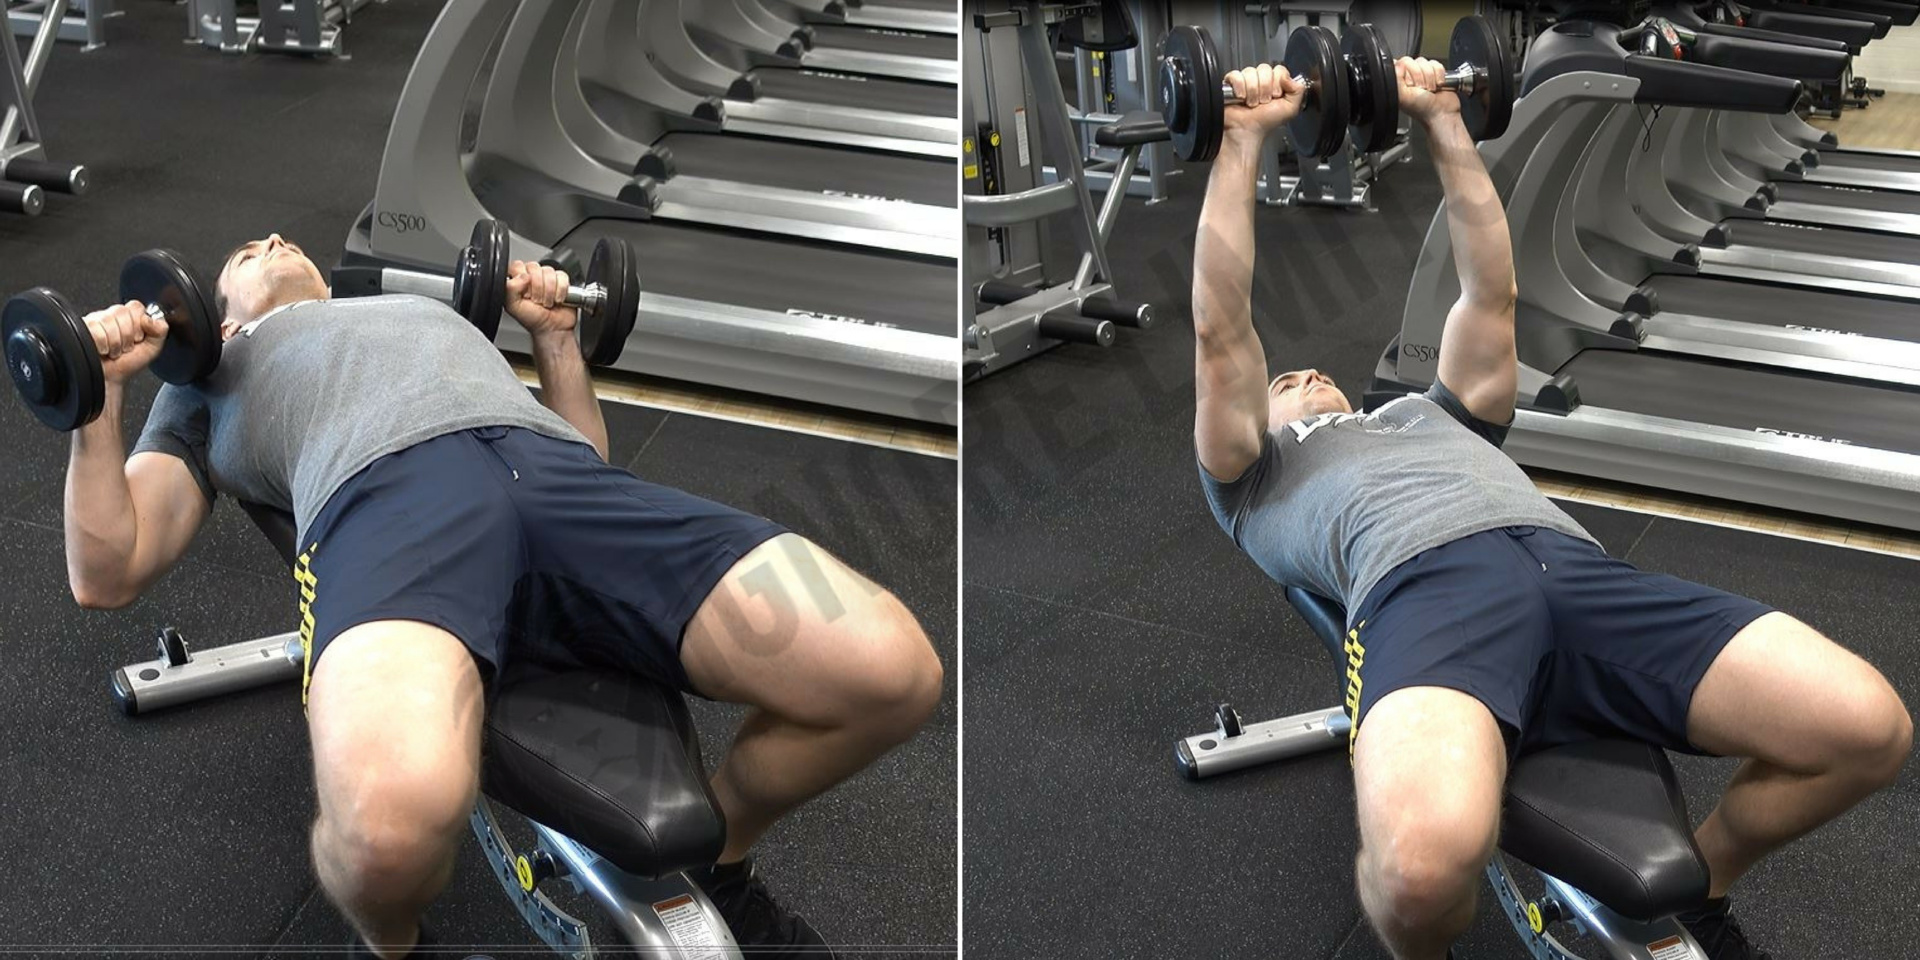 How To: Dumbbell Bench Press - Ignore Limits